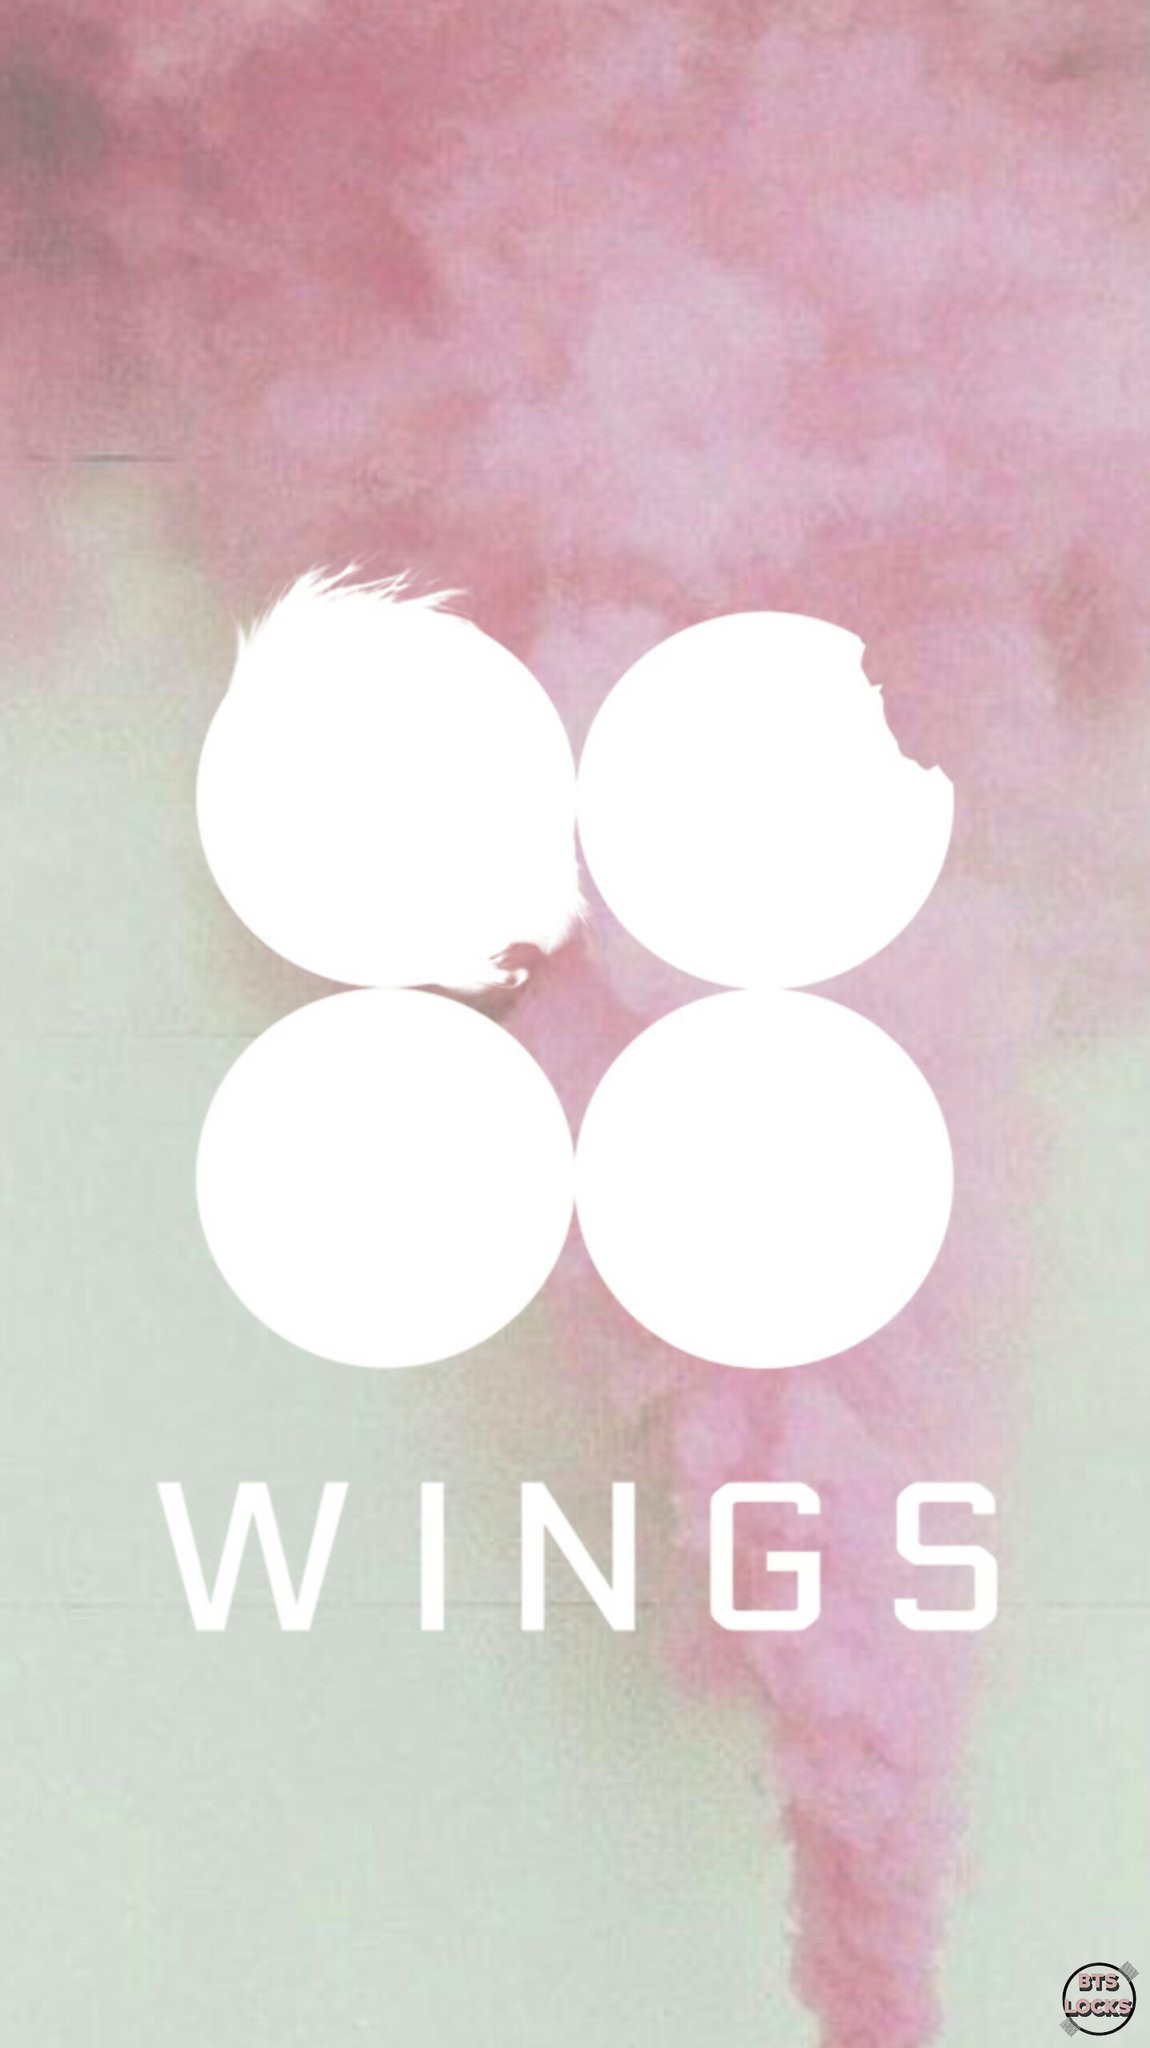 694438 amazing bts wings wallpapers 1150x2048 for iphone 7